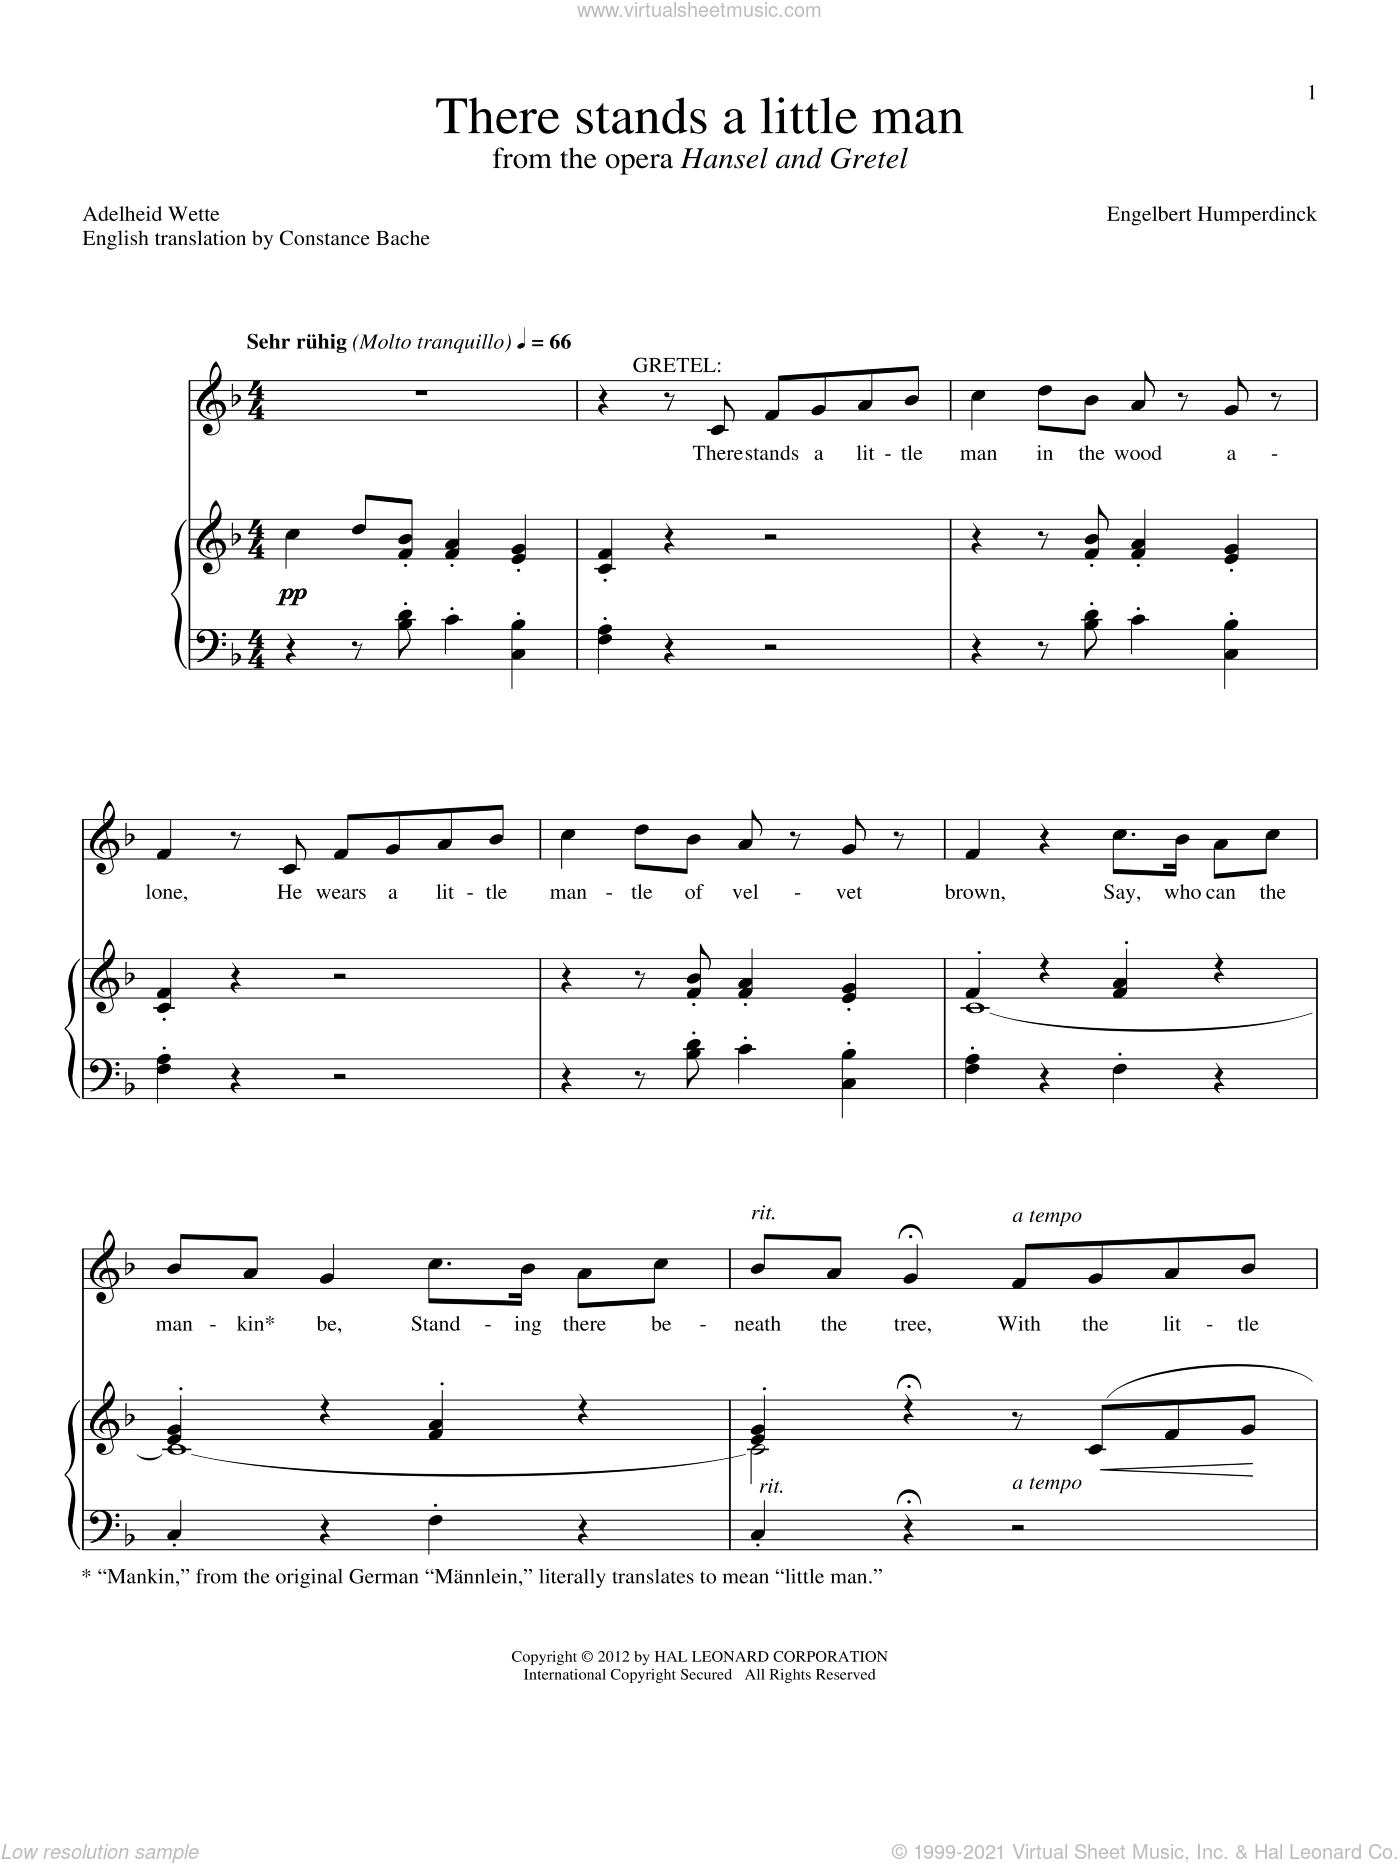 There Stands A Little Man sheet music for voice and piano by Adelheid Wette